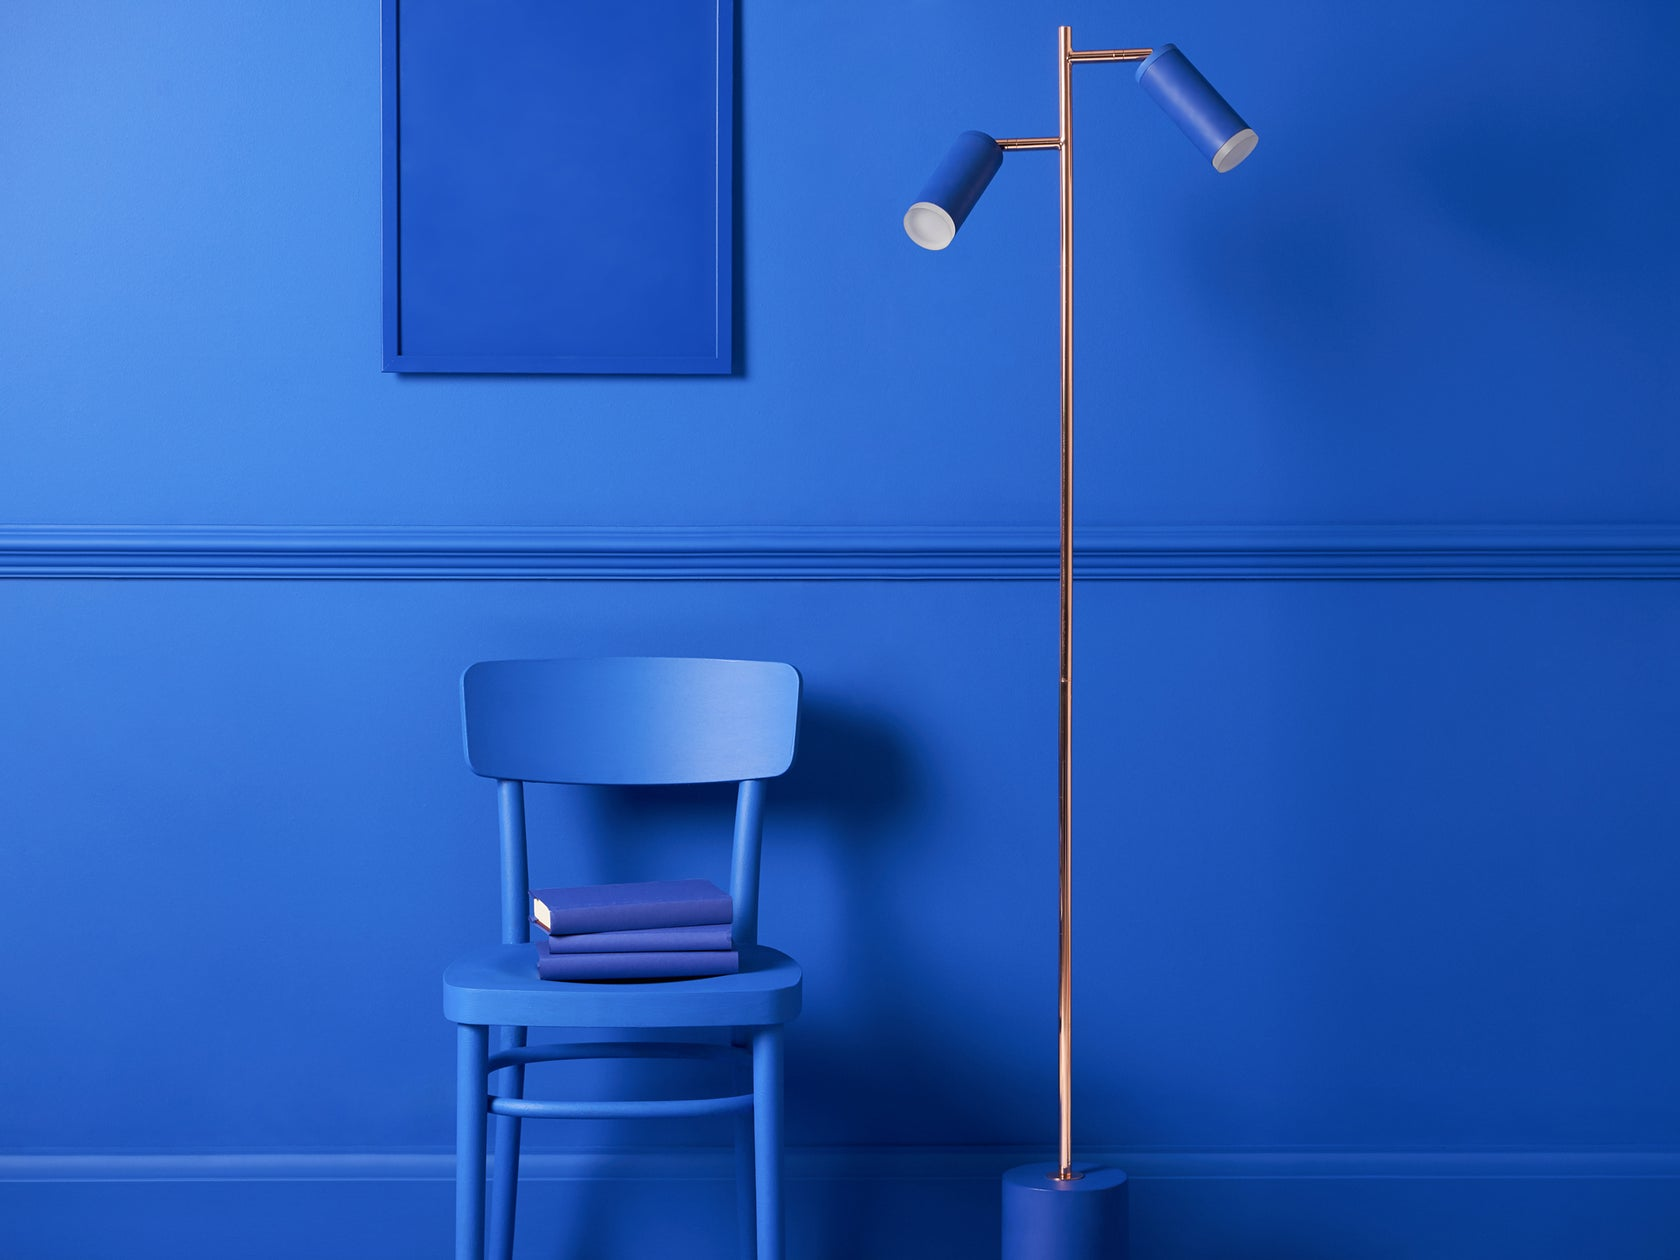 LED task floor lamp coral | context | houseof.com